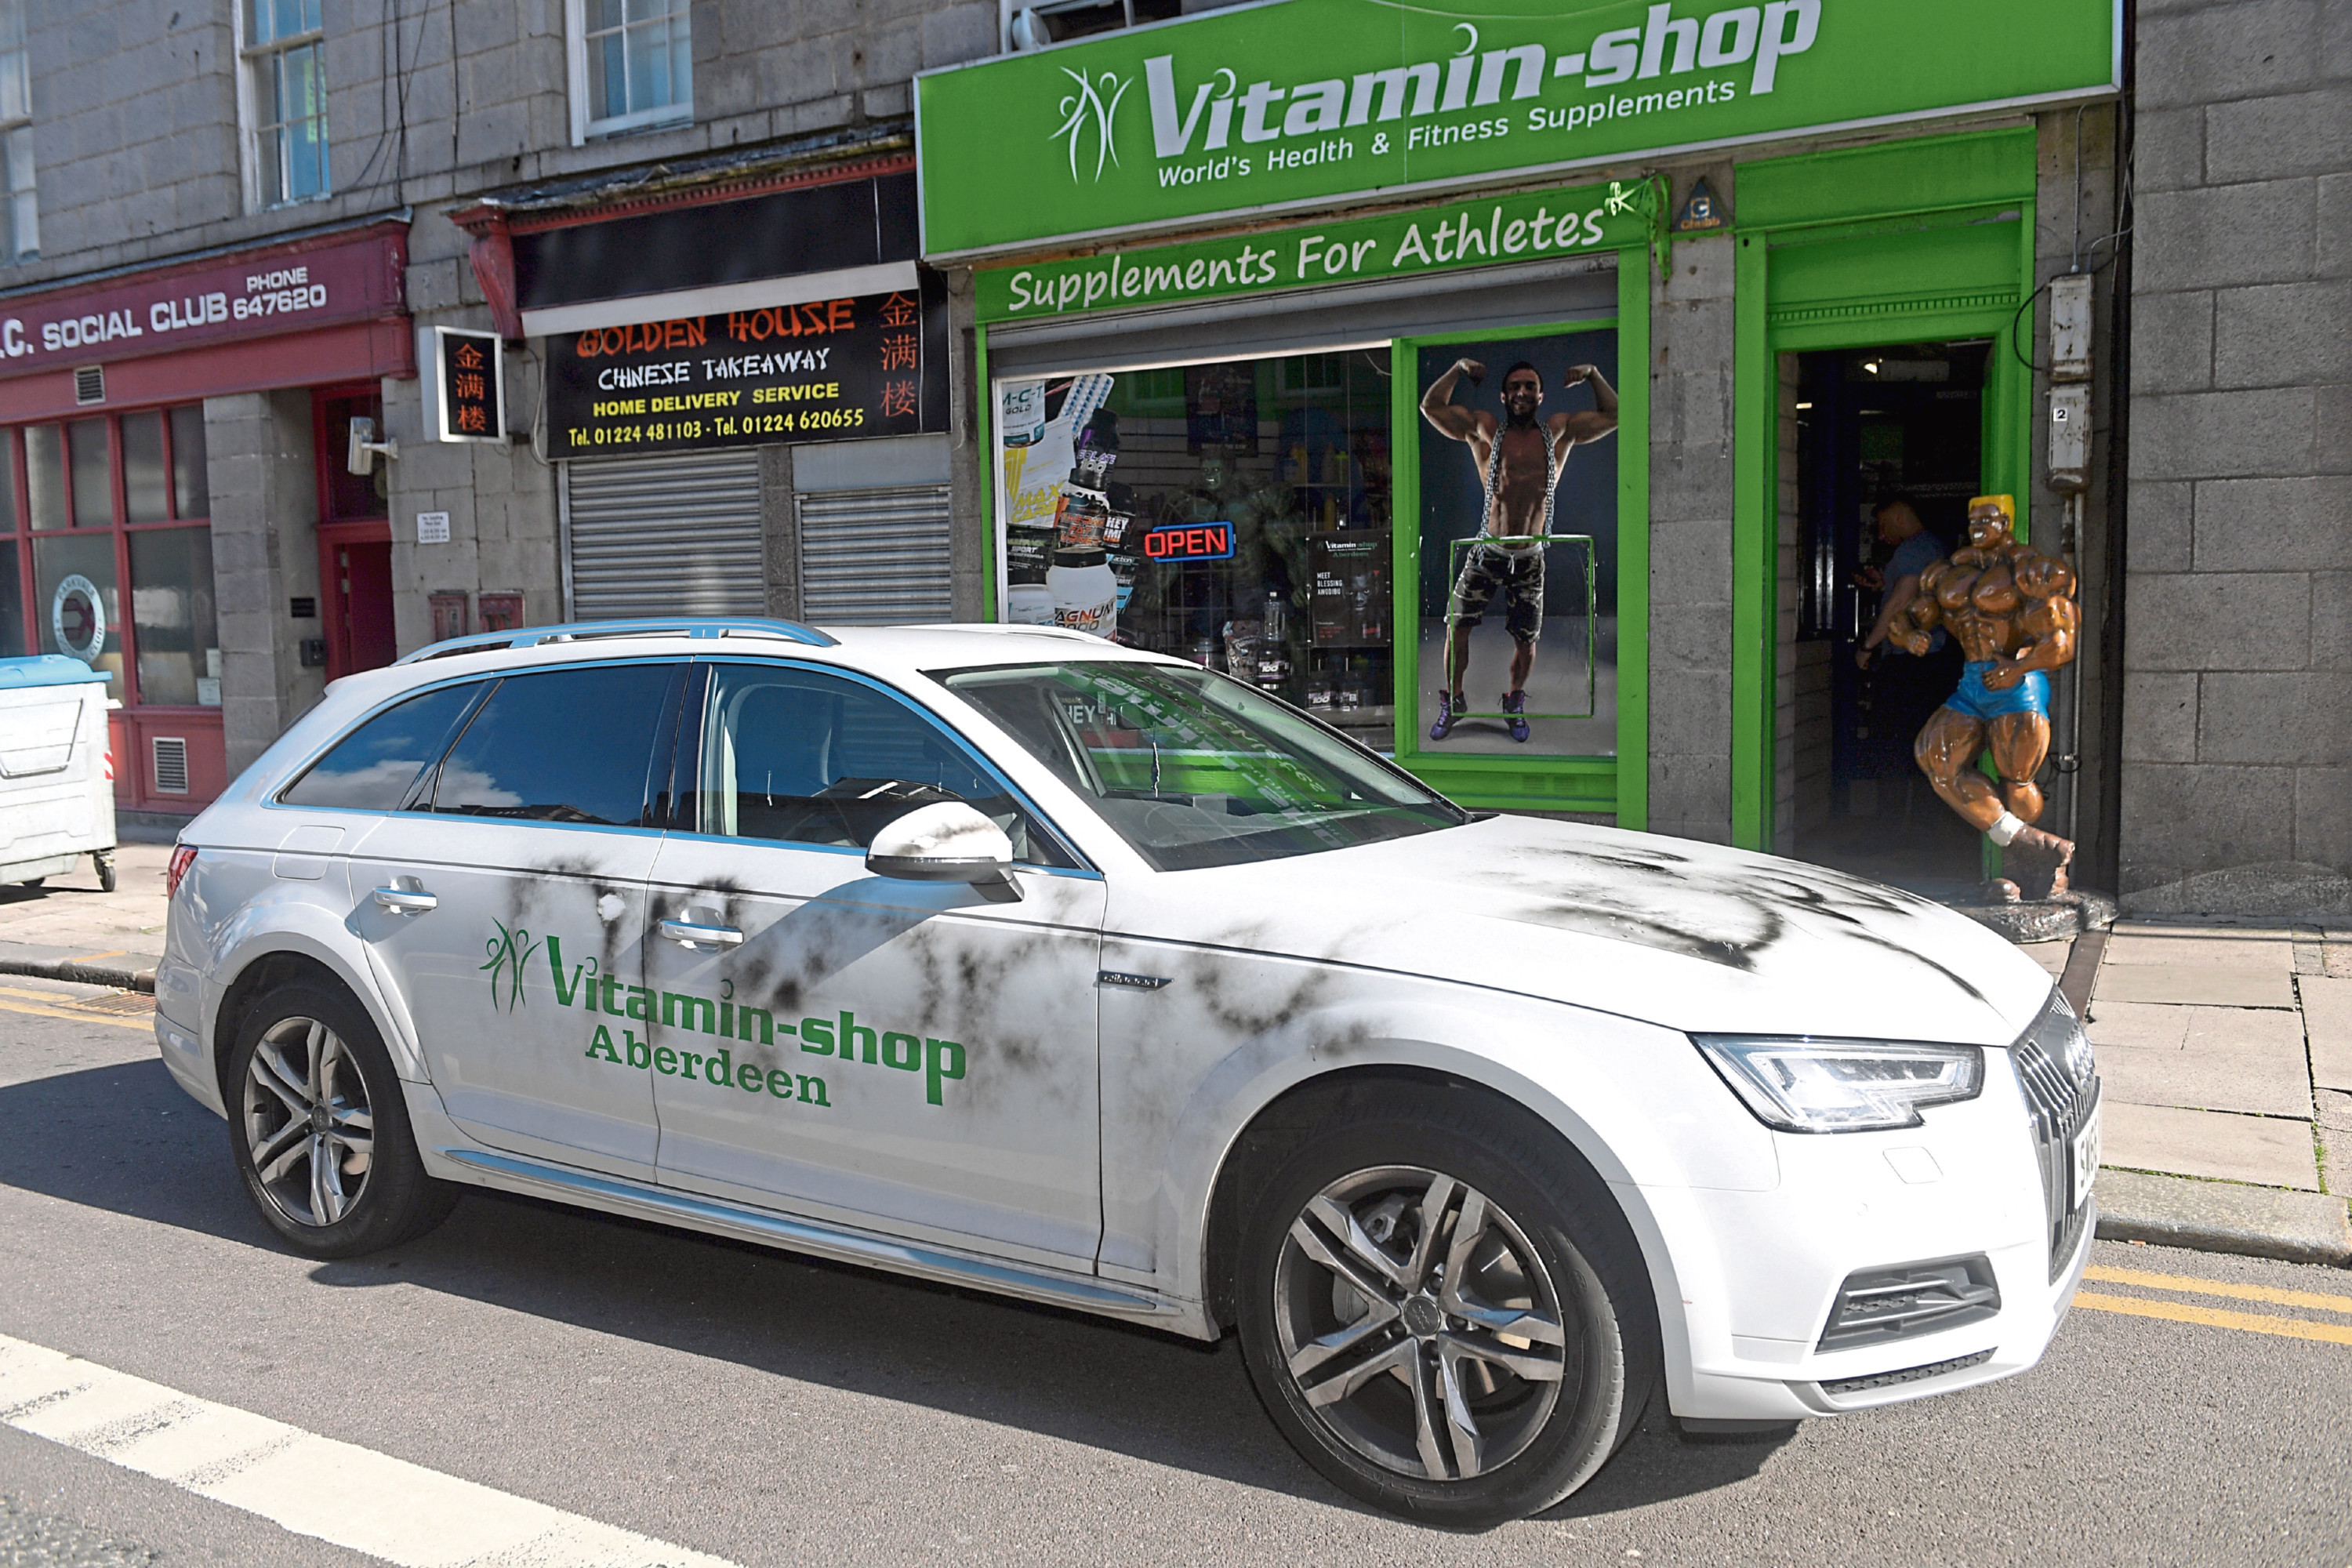 Peter Ruparewicz, who runs The Vitamin Shop on King Street, had one of his cars spray painted over the weekend